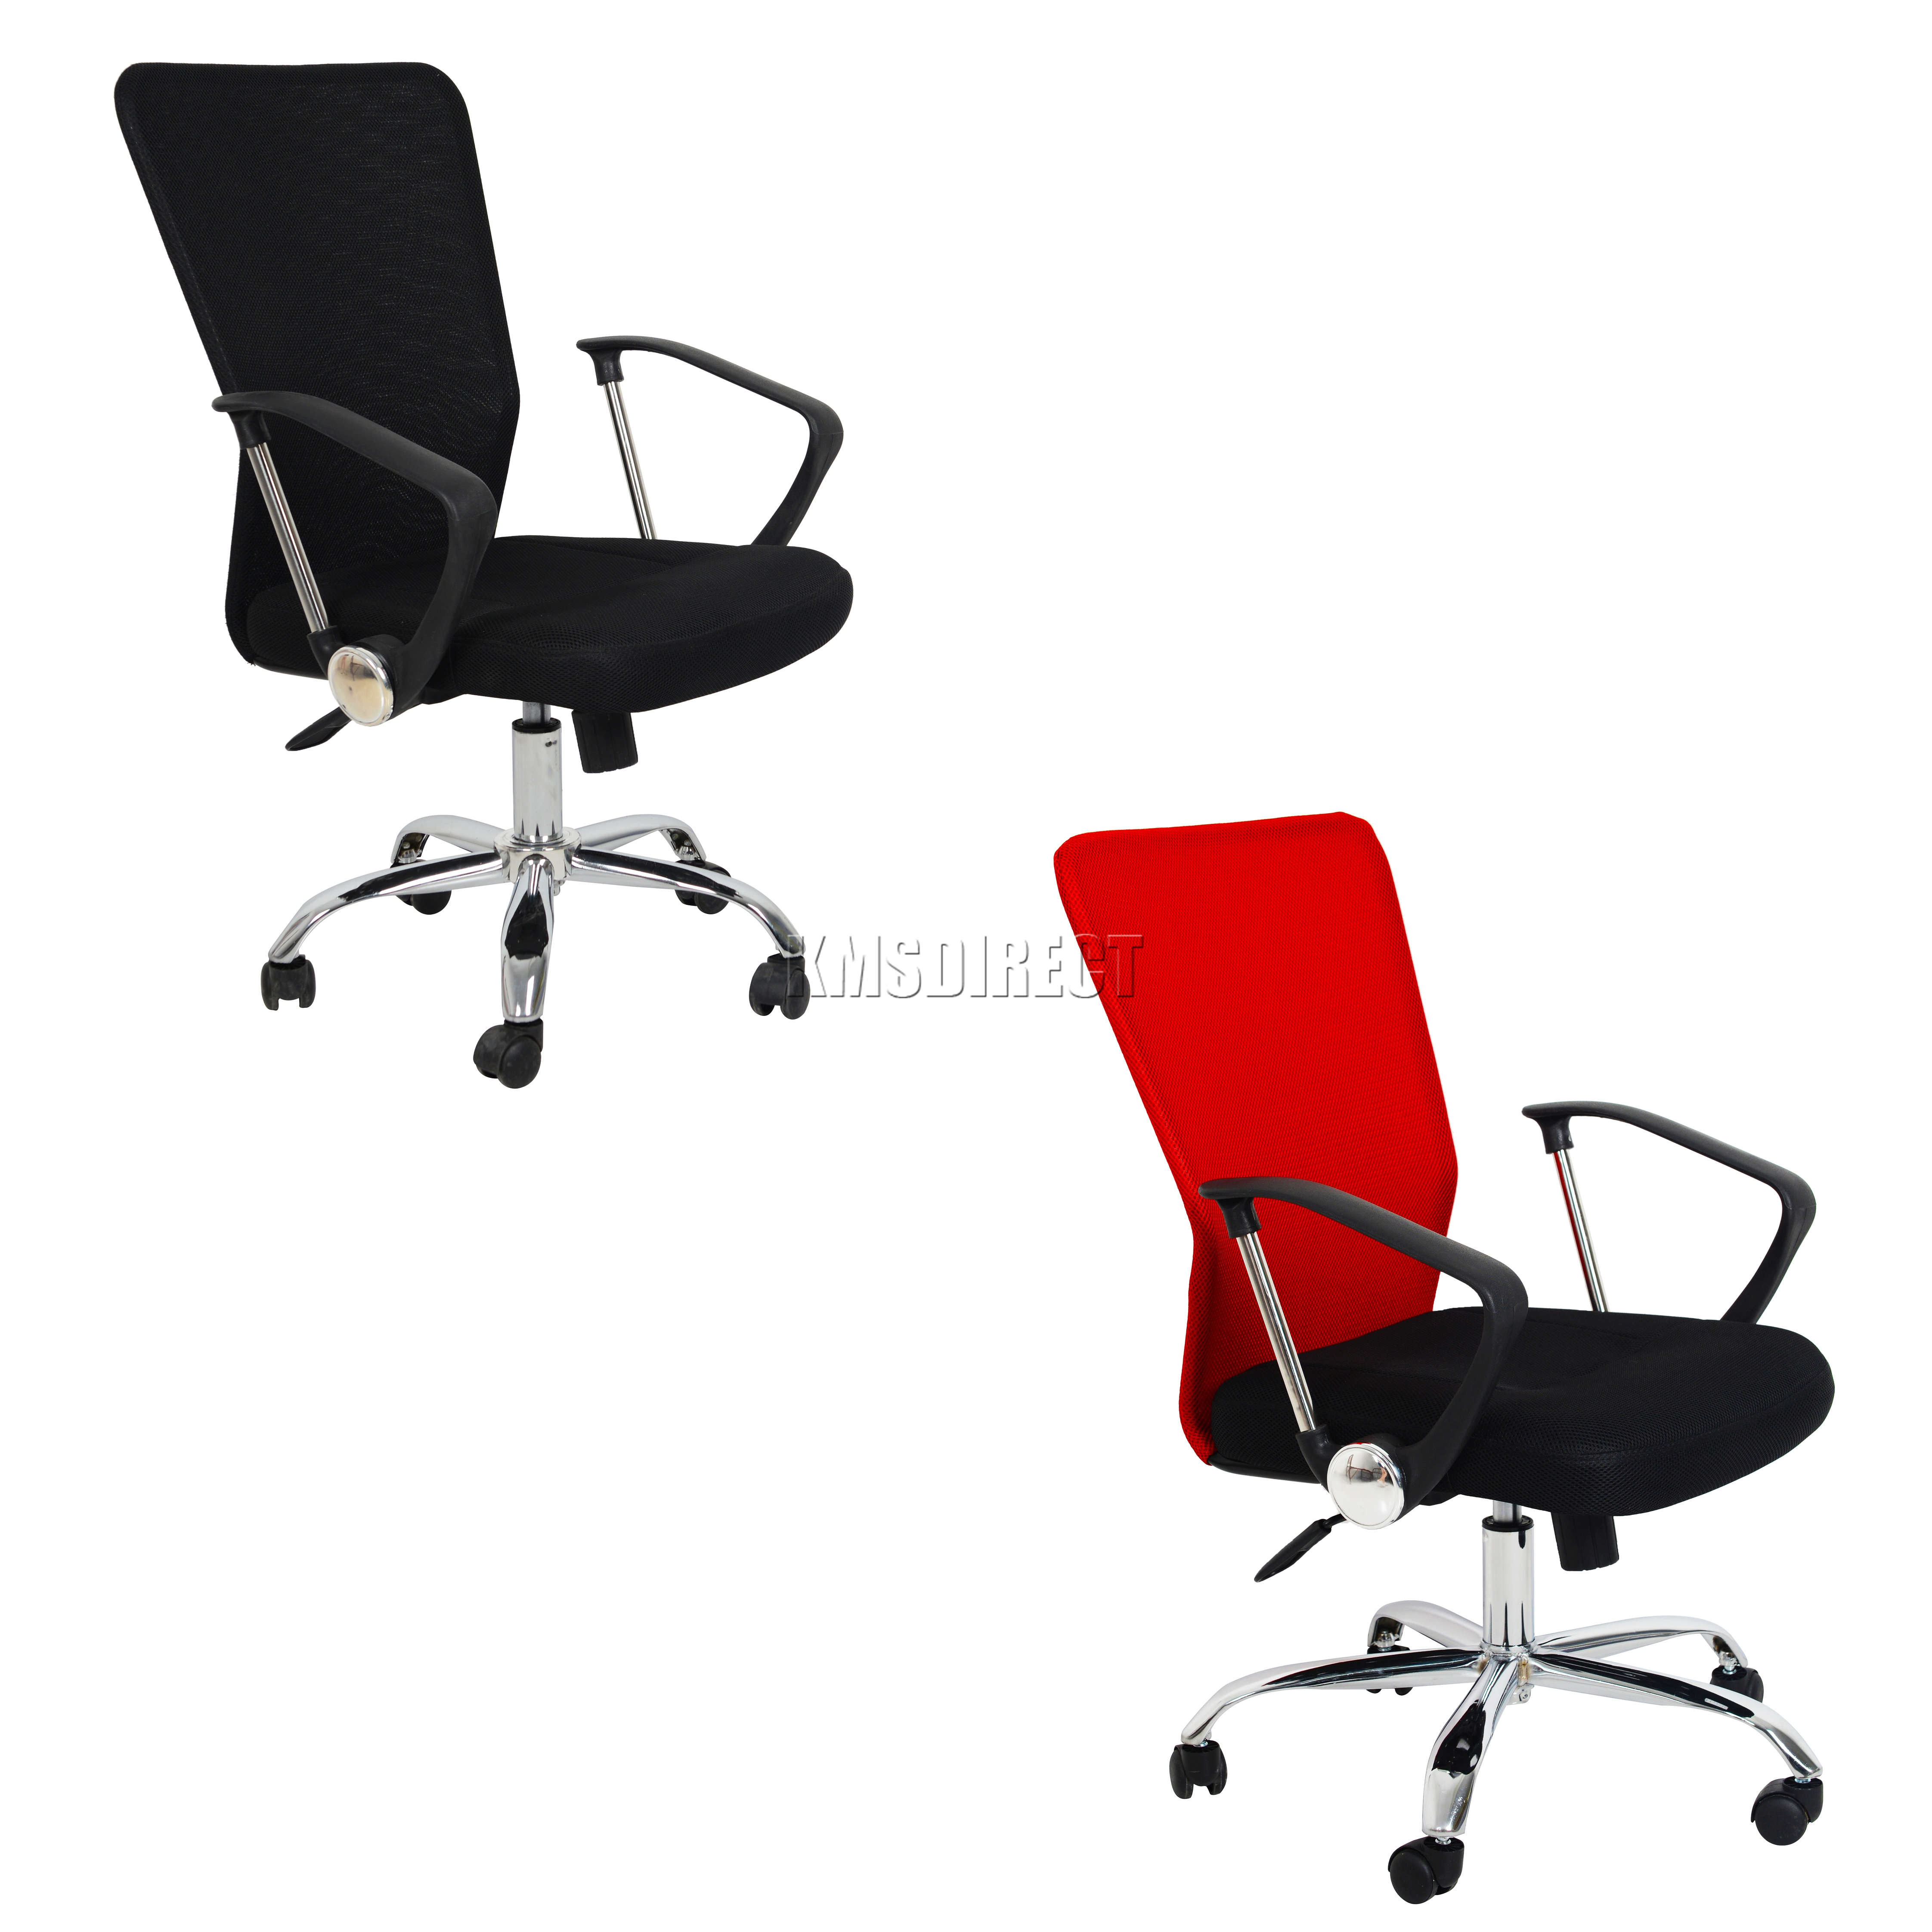 FoxHunter puter Executive fice Desk Chair Mesh Fabric Swivel